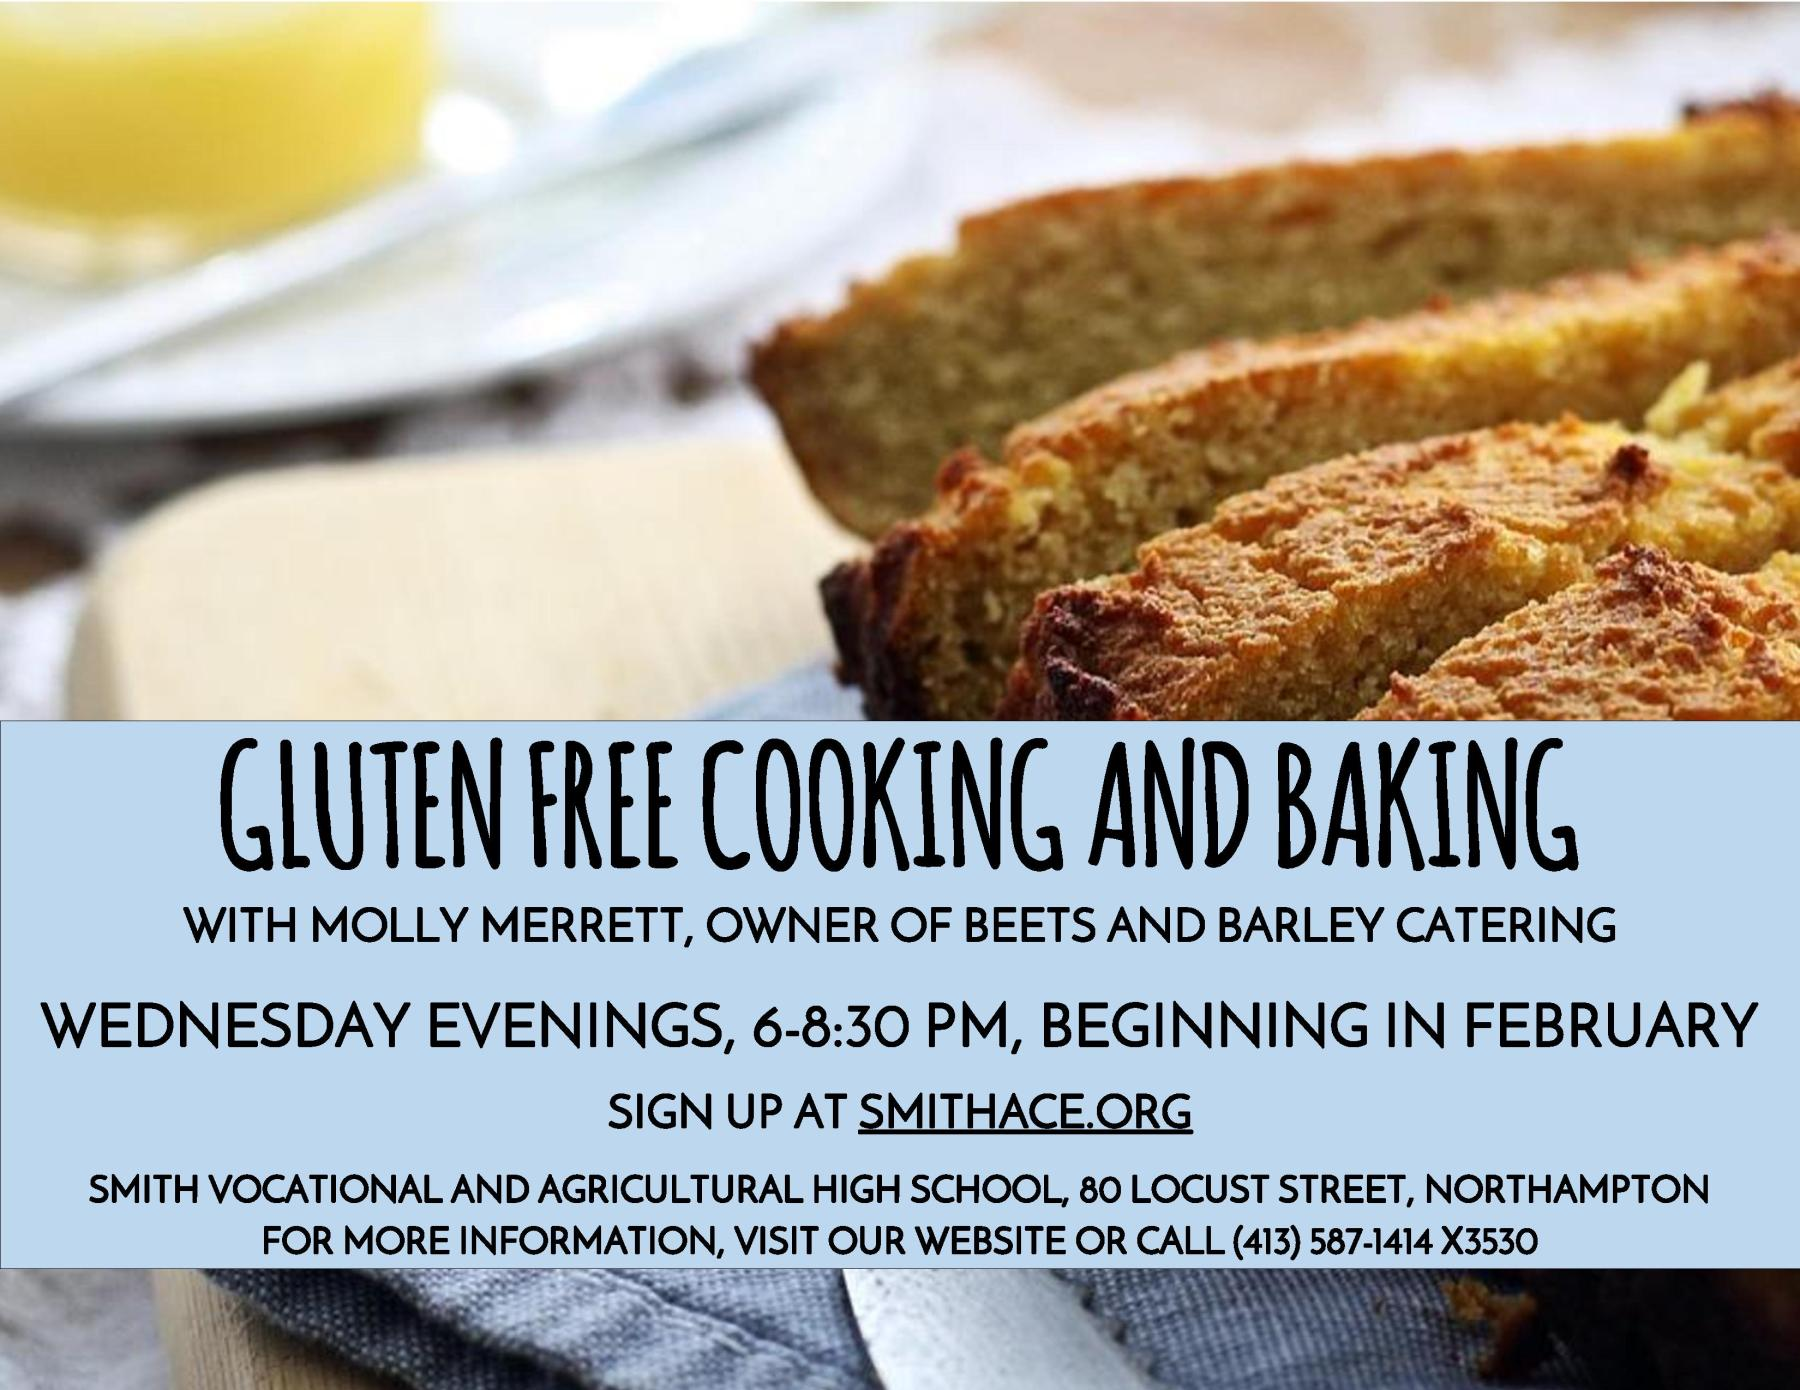 gluten-free-cooking-and-baking-flyer